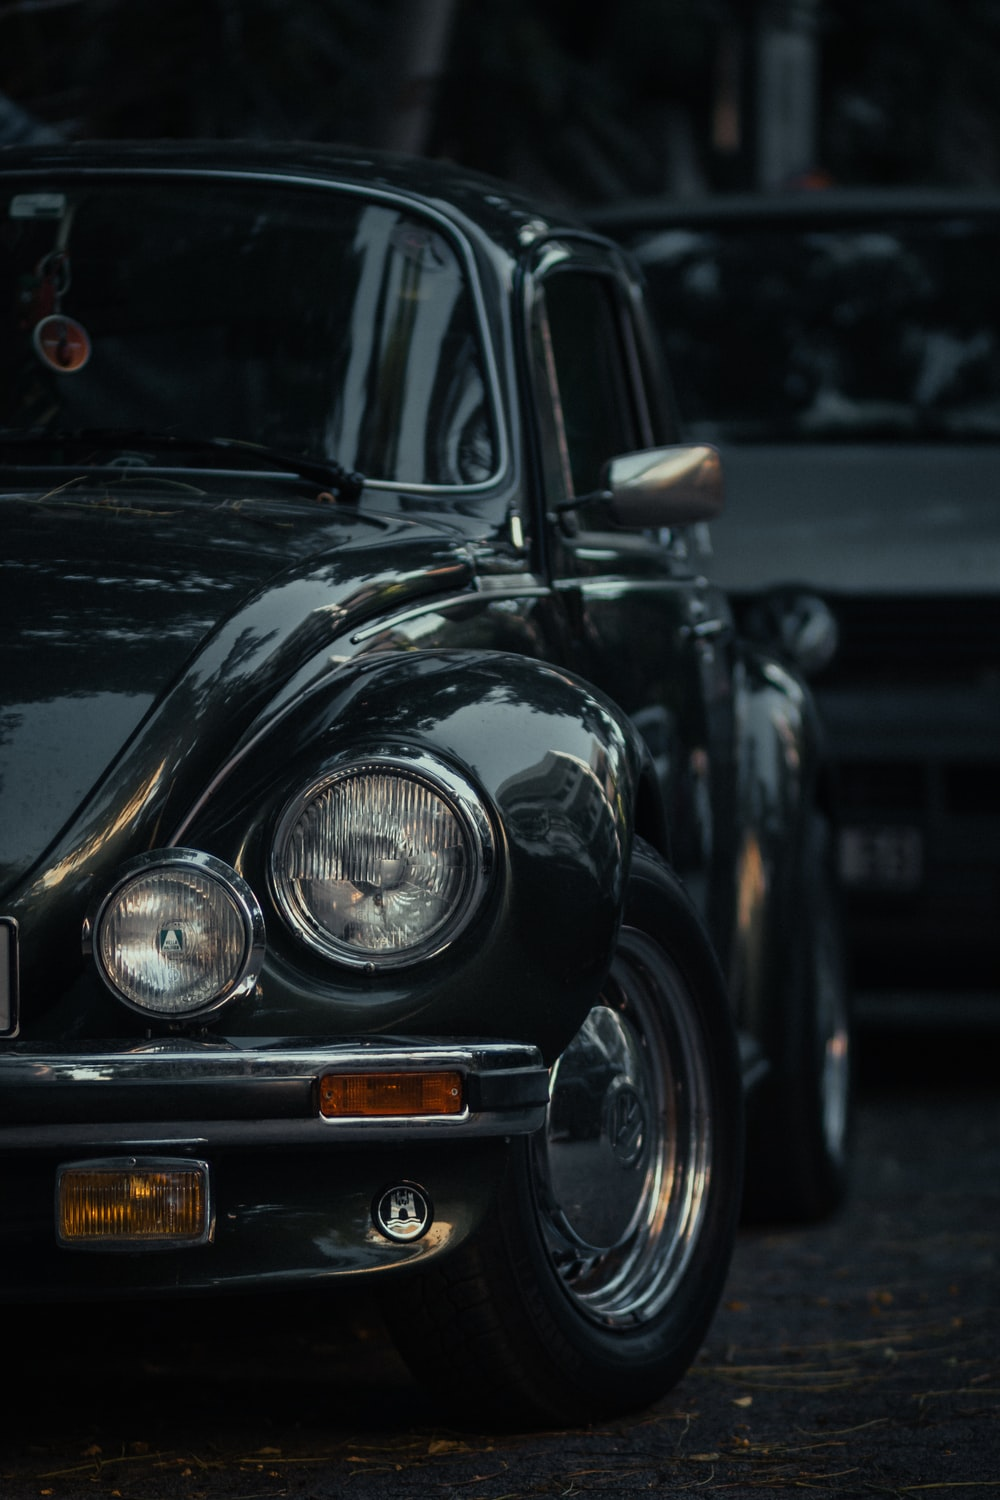 black classic car in grayscale photography